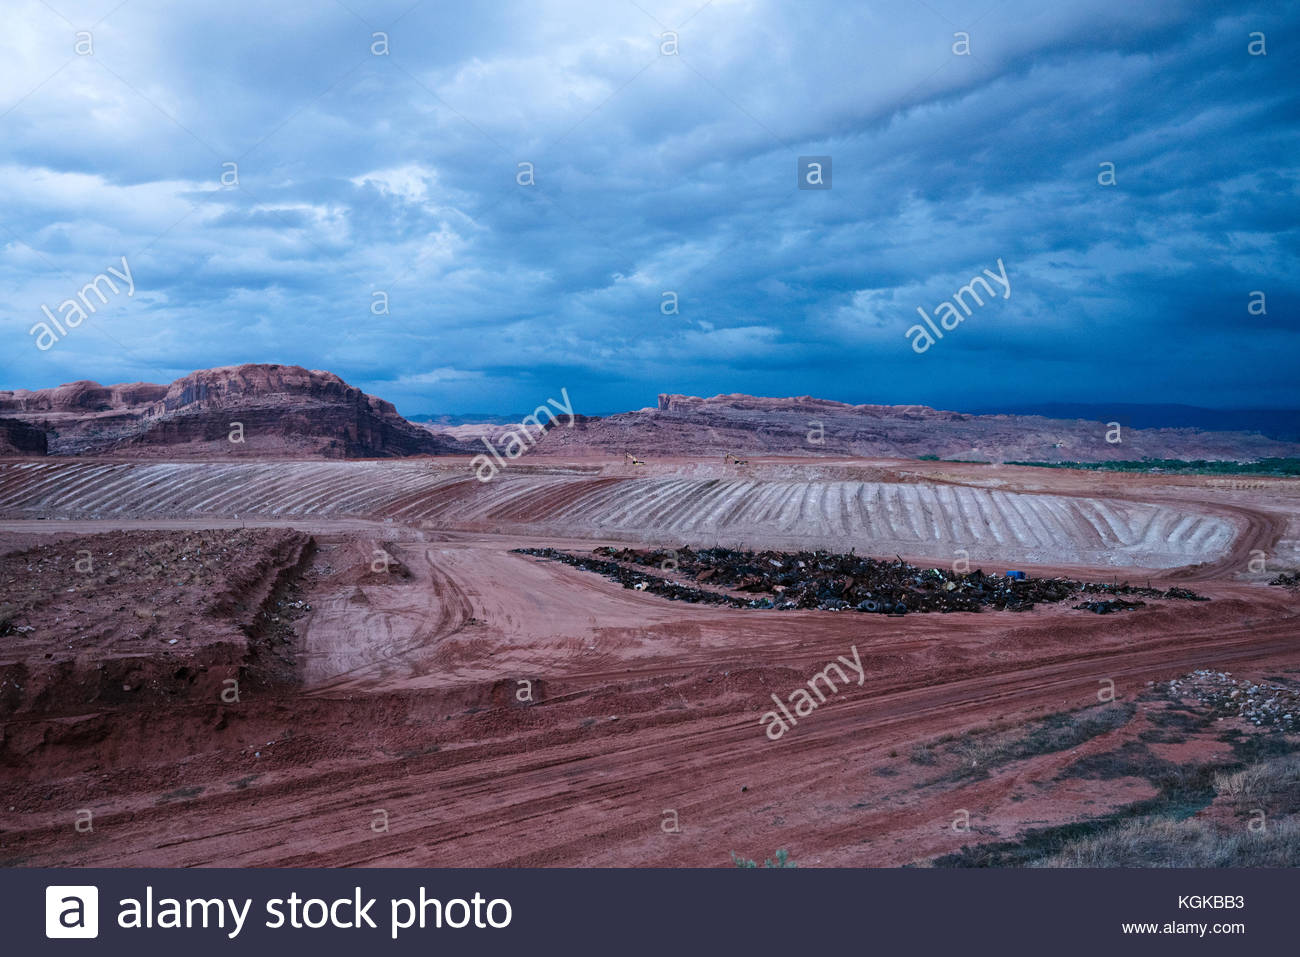 A view from the road overlooking a landfill outside of Moab. - Stock Image